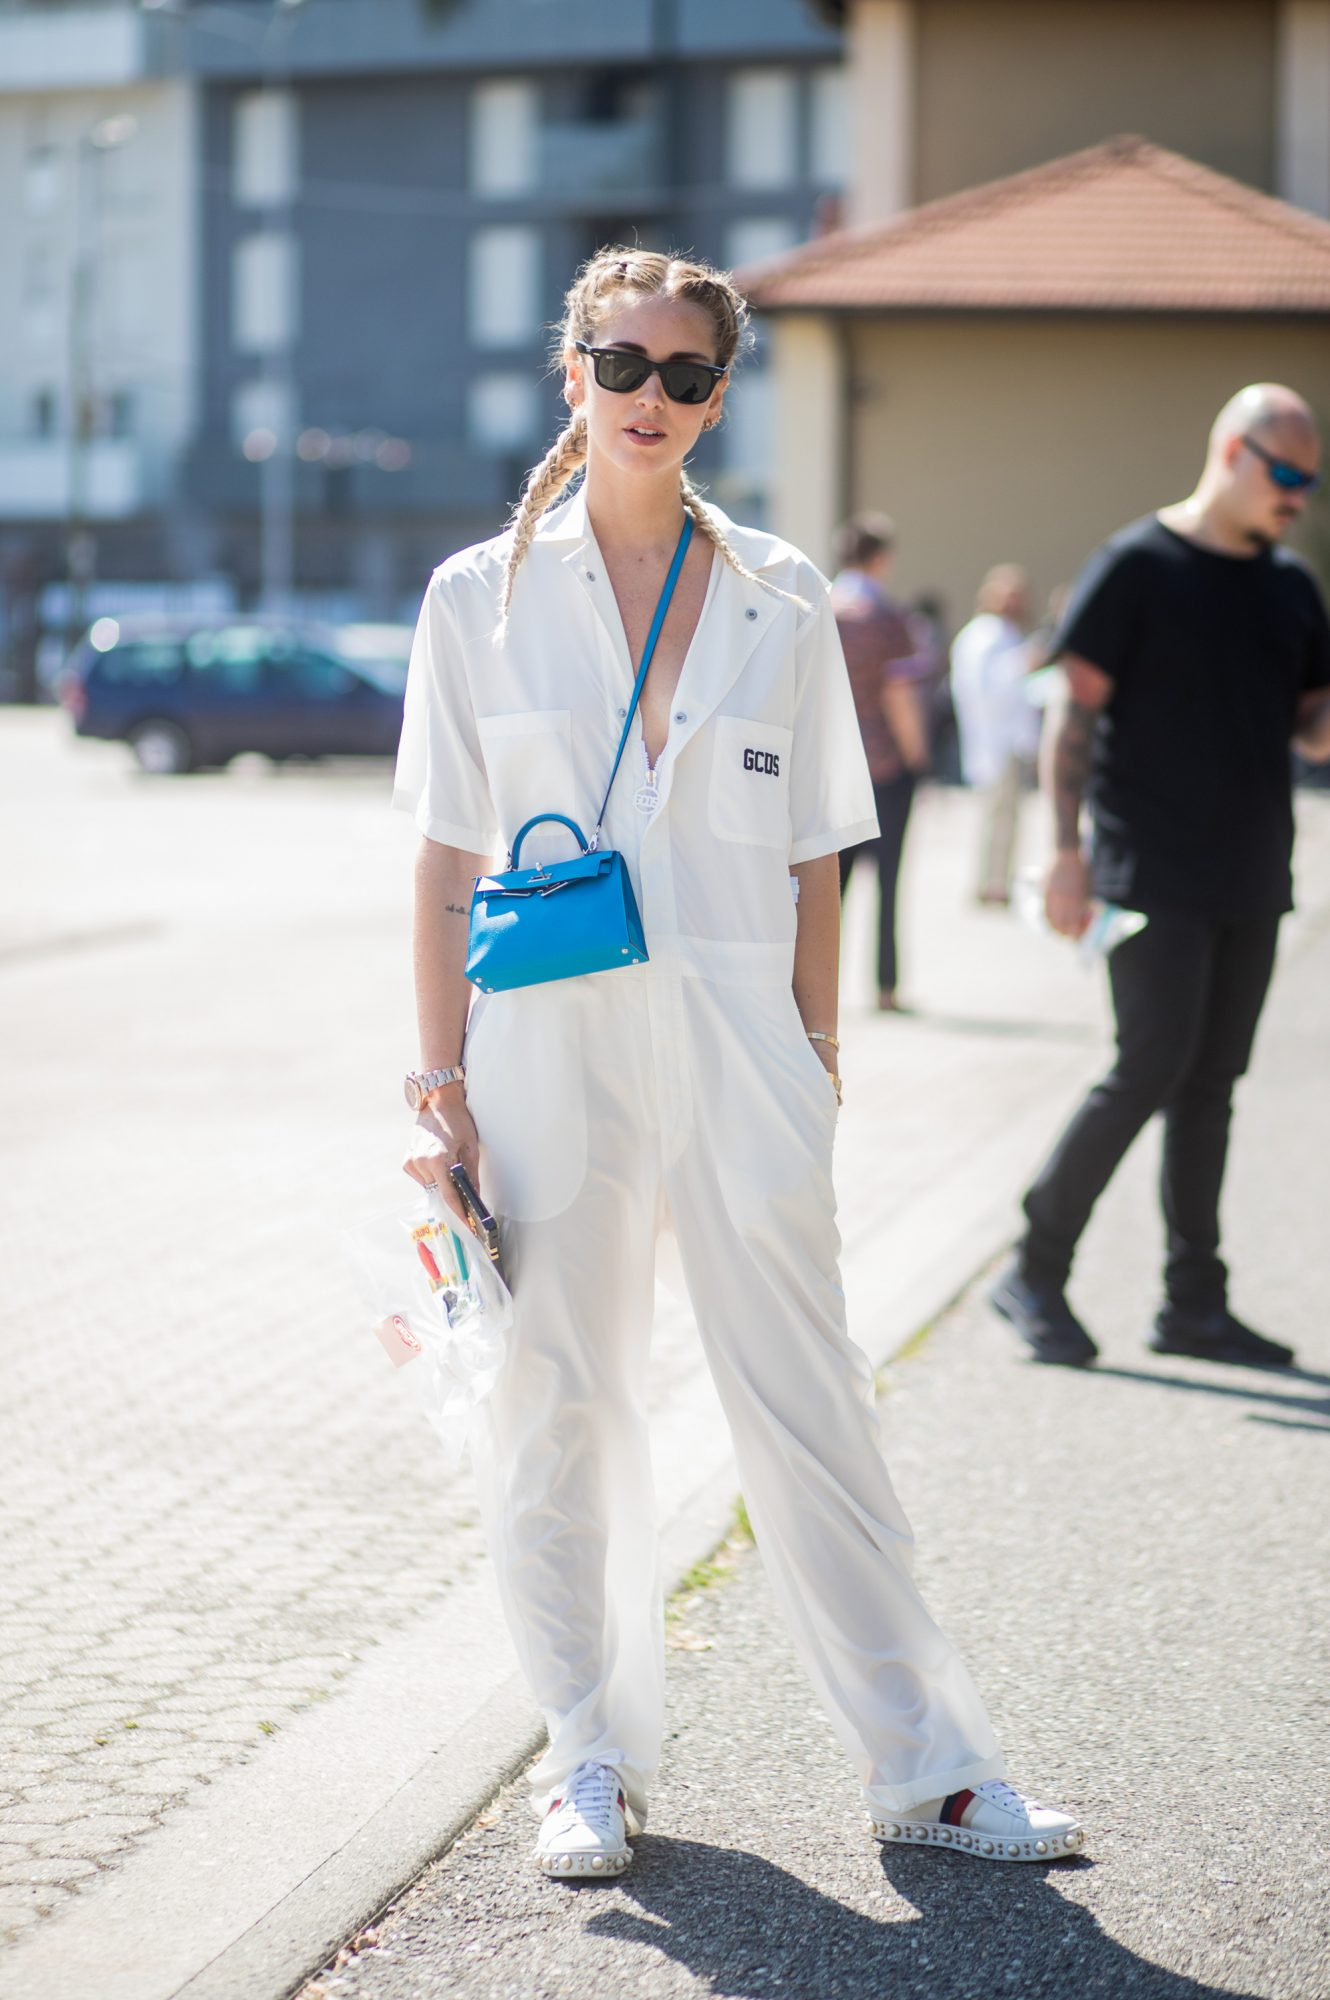 17 Jumpsuits That Will Make You Want to Ditch Dresses Entirely